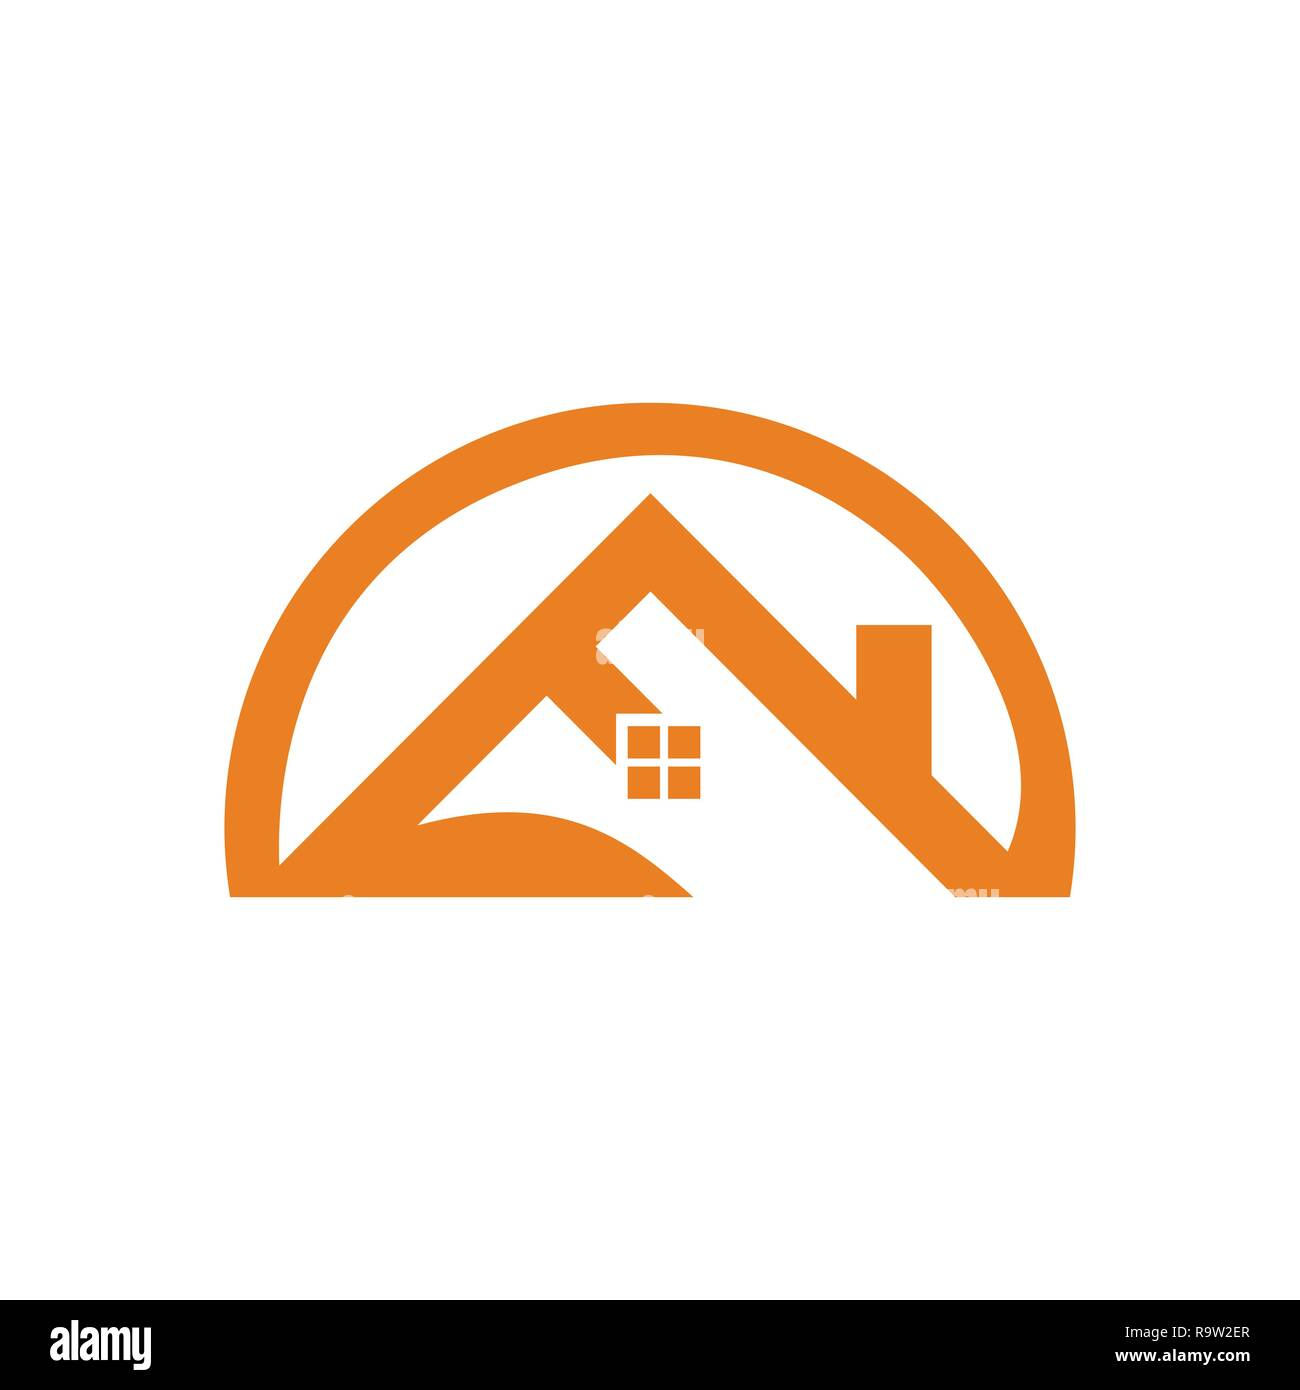 Security Hut Symbol: Roof Element Stock Photos & Roof Element Stock Images